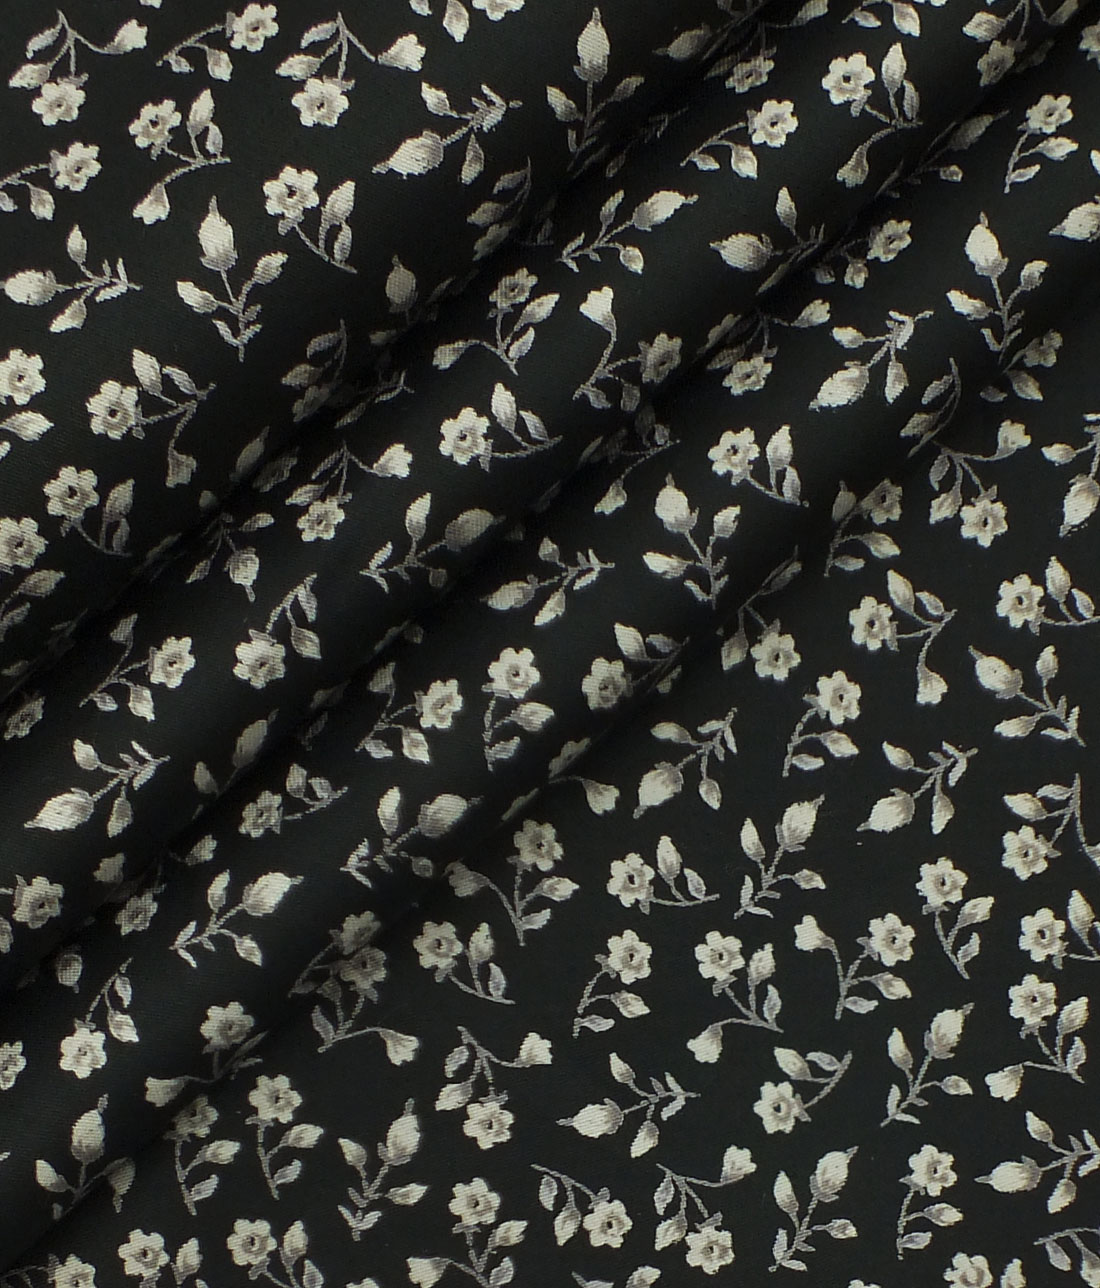 Exquisite Black 100 Pure Cotton Floral Print Shirt Fabric 240 M Casual Pattern